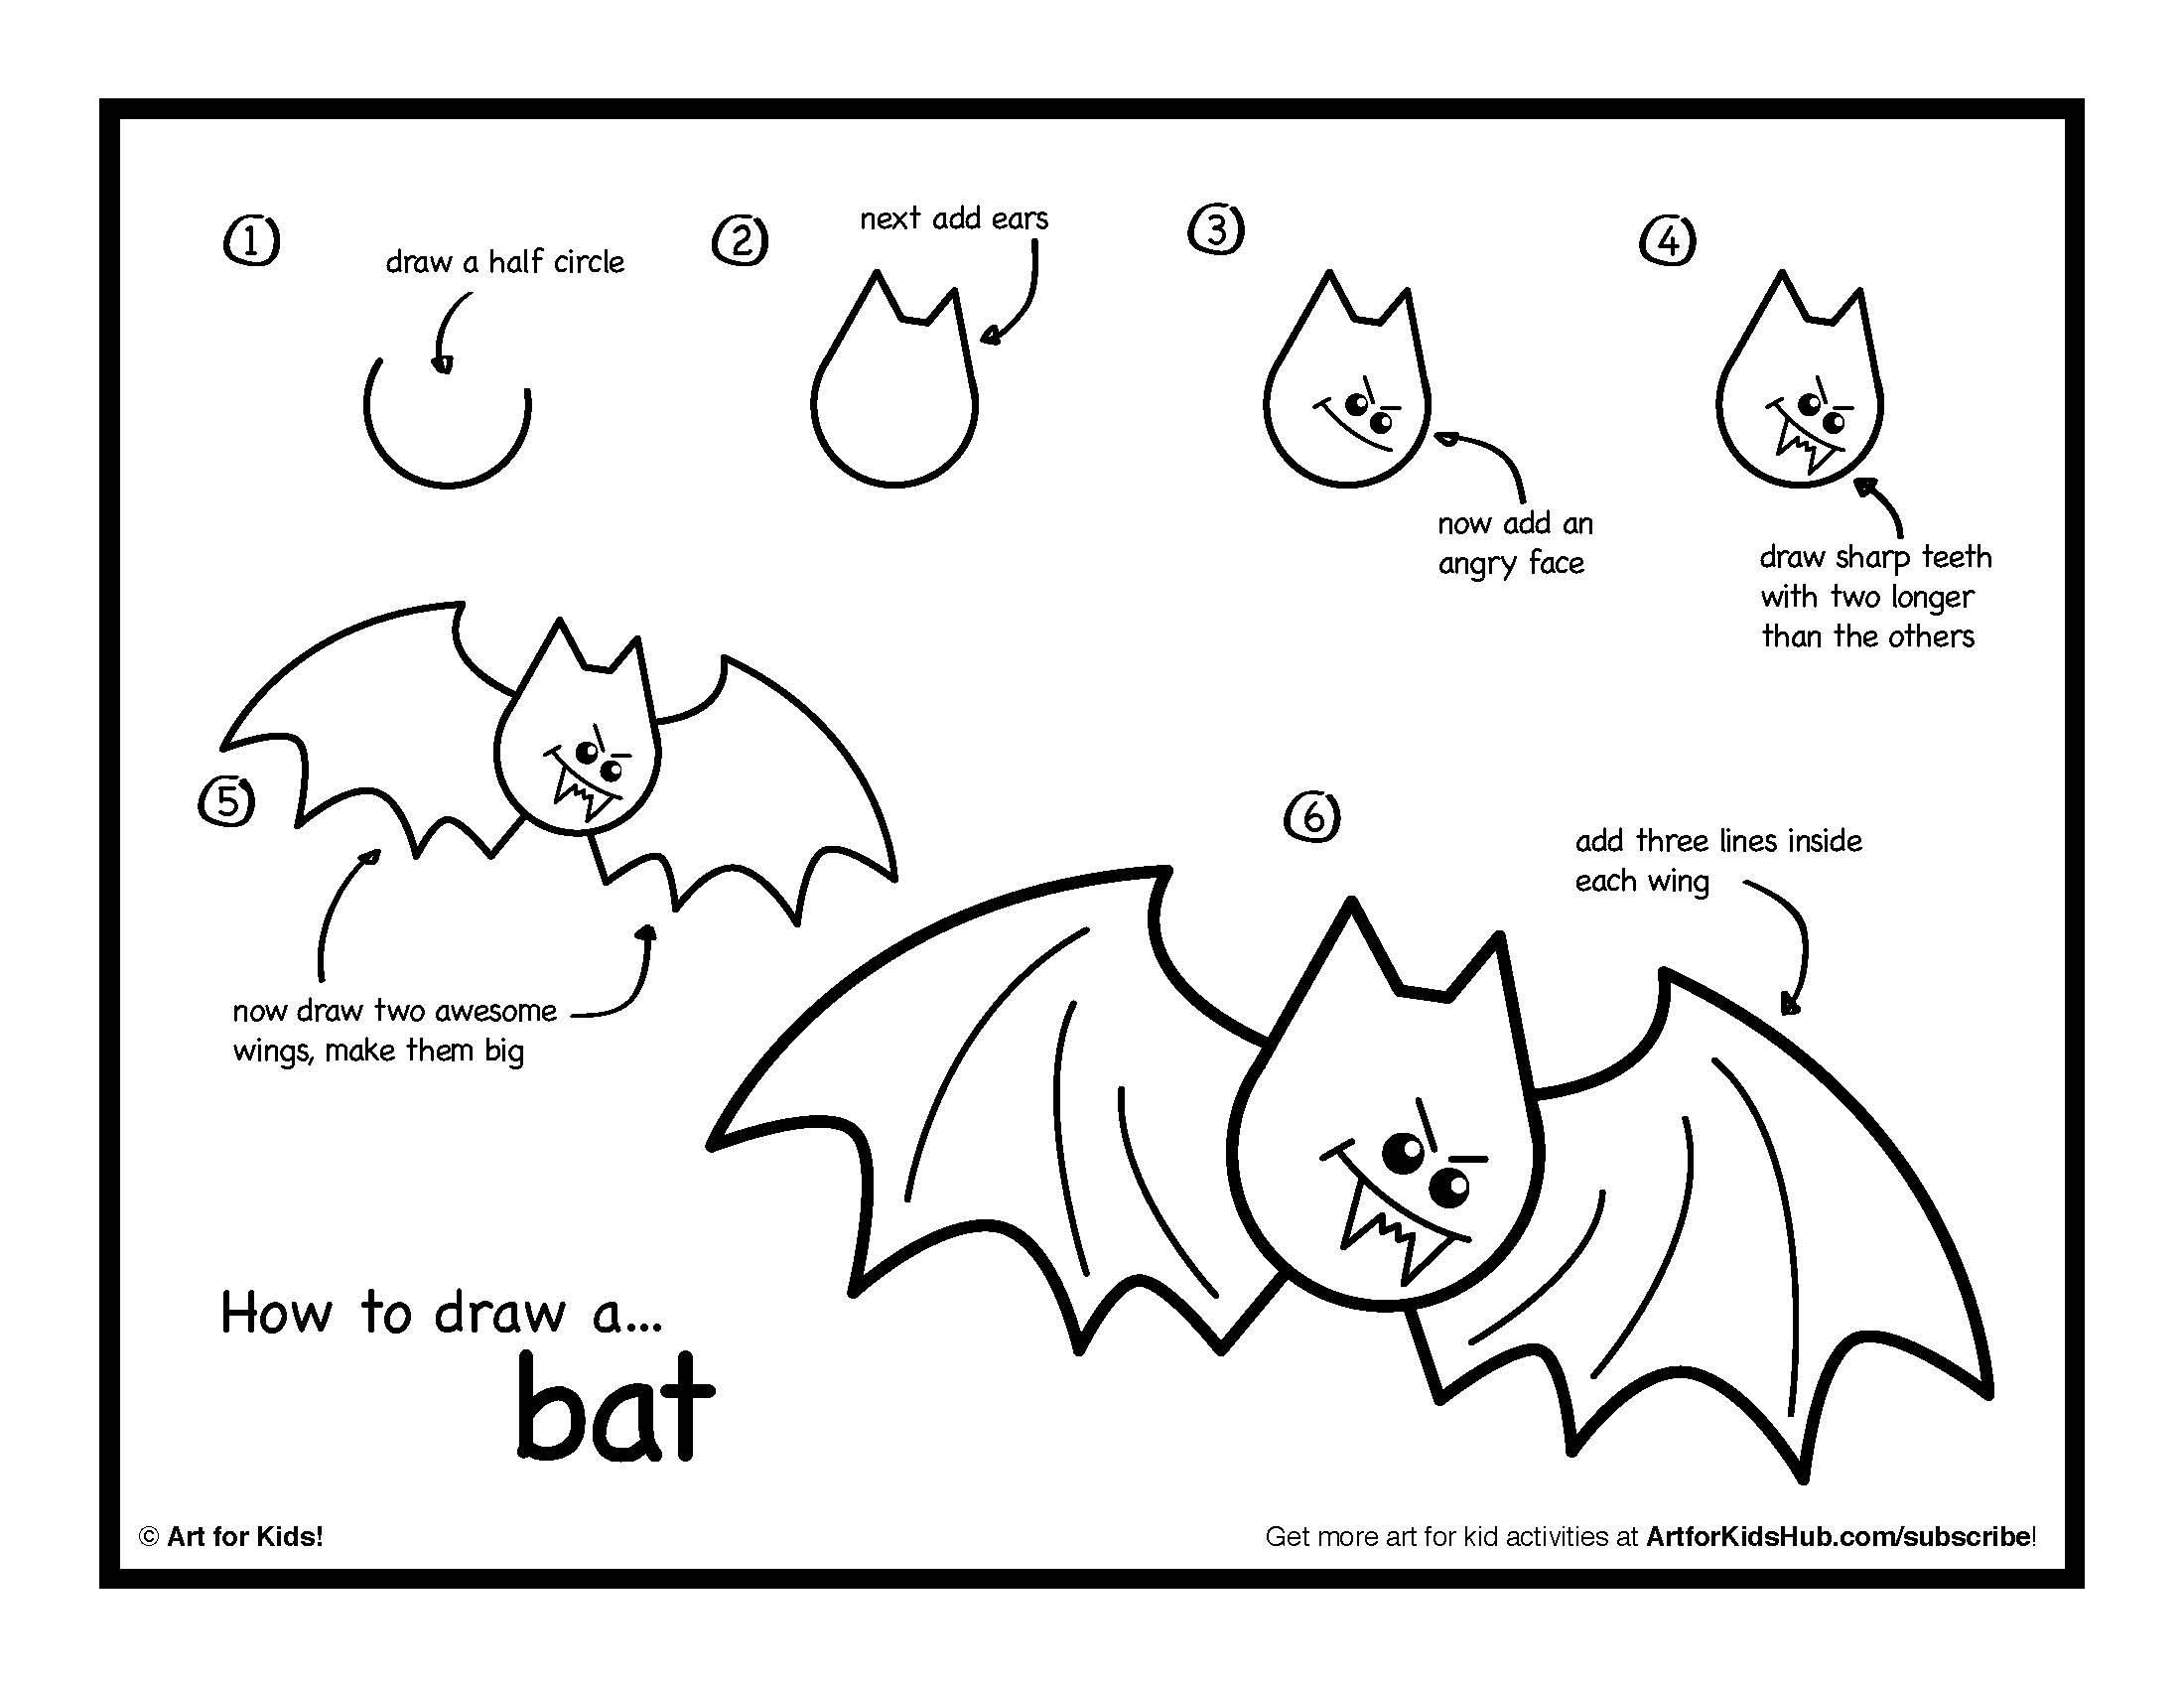 Uncategorized How To Draw A Bats how to draw a bat hackandhash hack and hash pinterest bats hackandhash